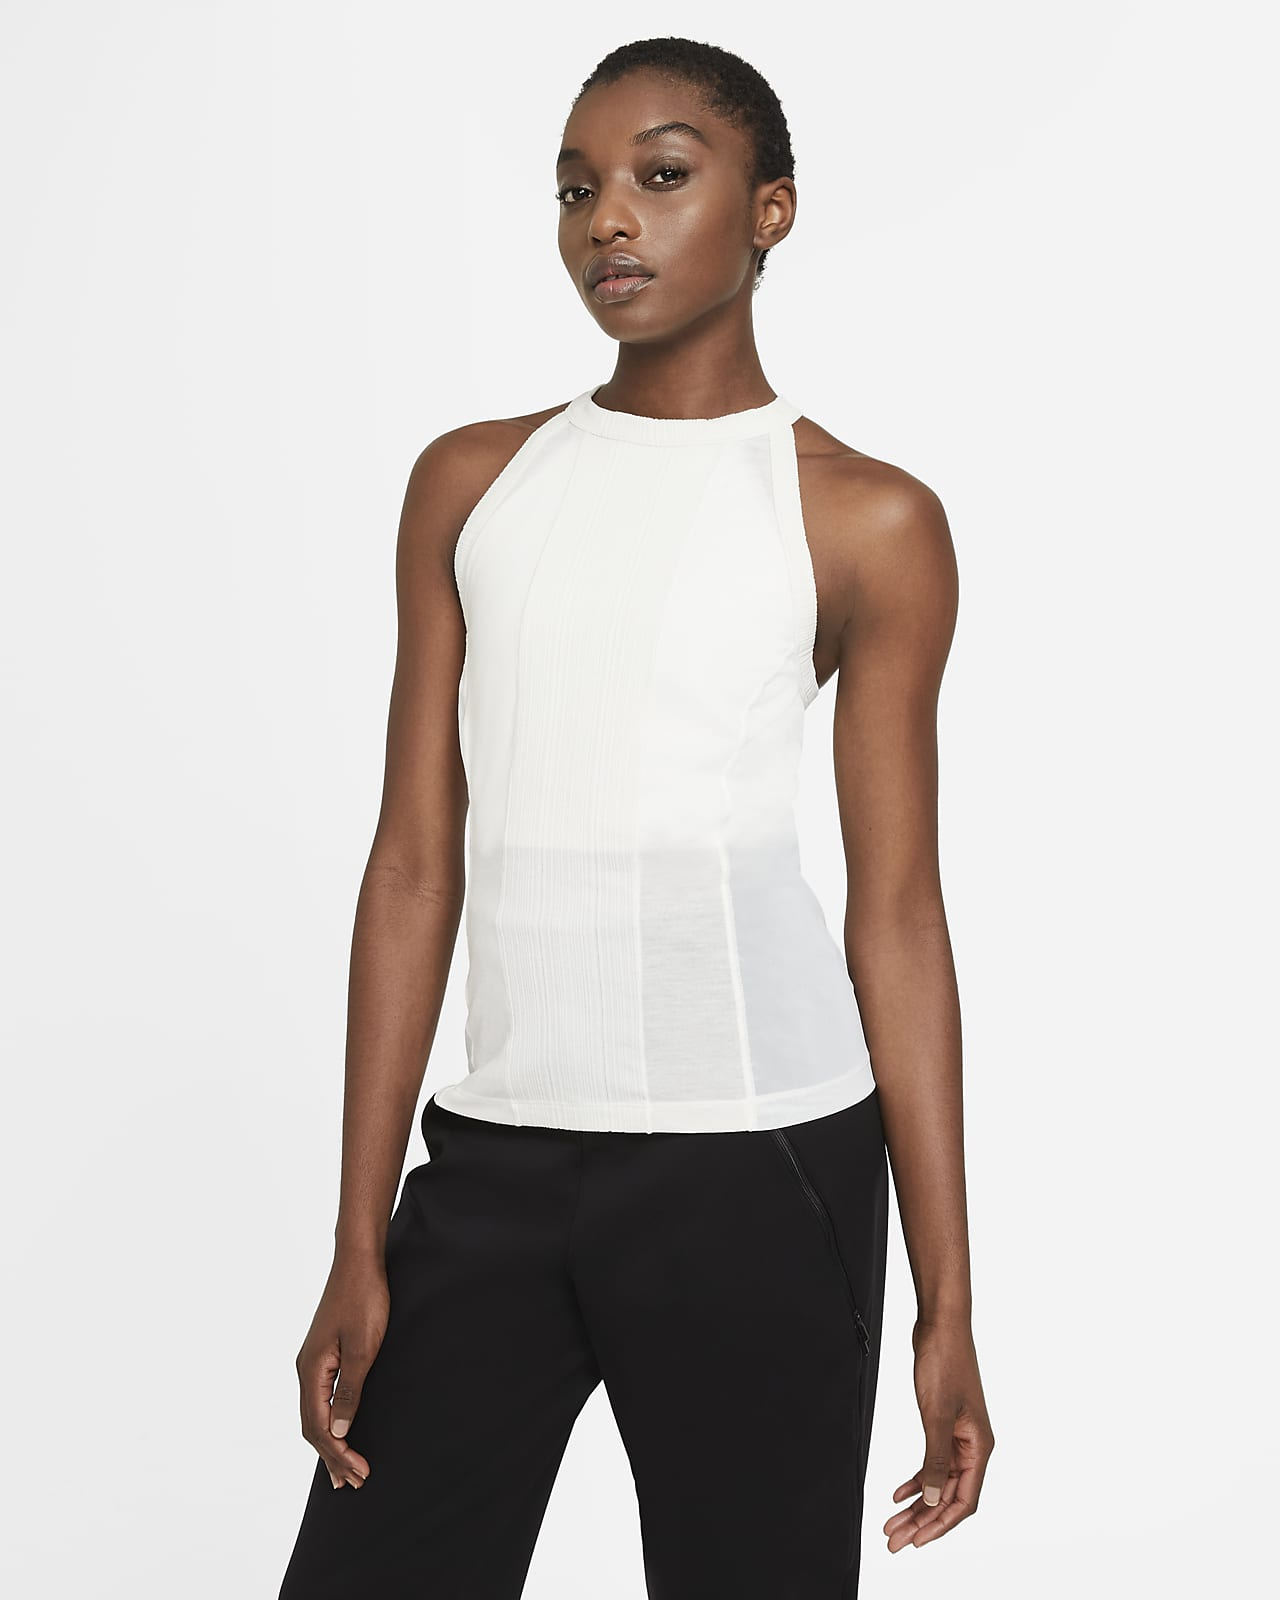 Nike City Ready Women's Training Tank